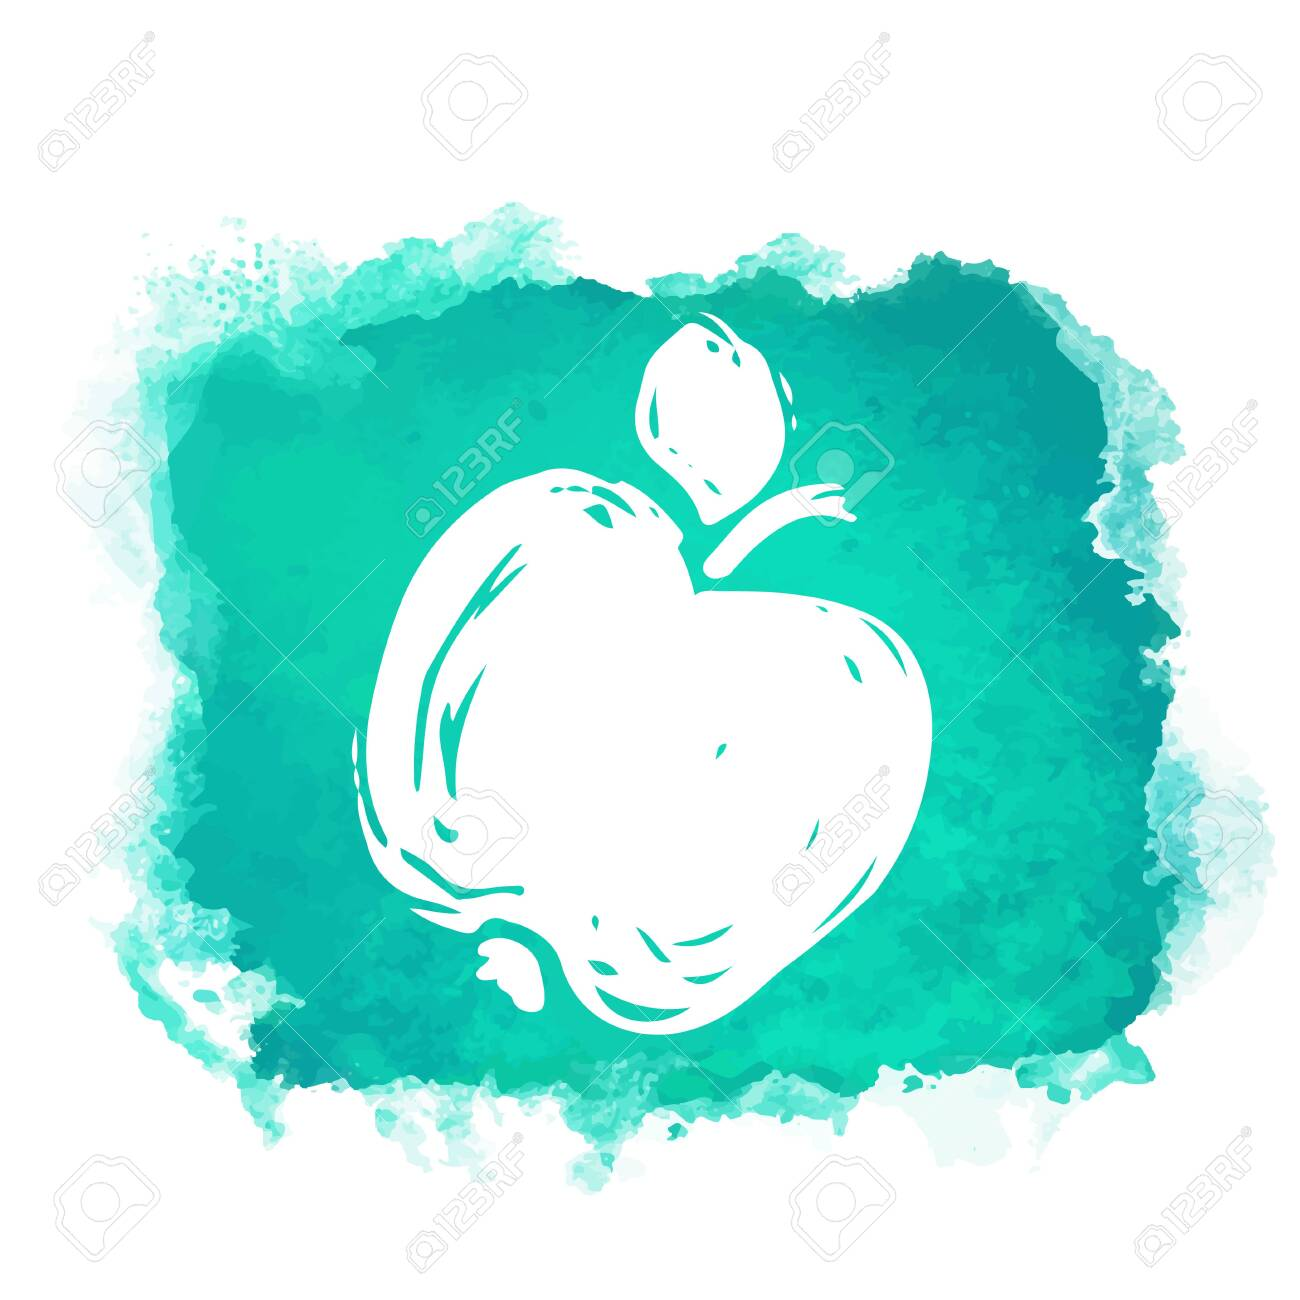 Watercolor green square paint stain with splash and fruit apple closeup white silhouette. Natural icon isolated on white background. Abstract art. Logo design - 149706516